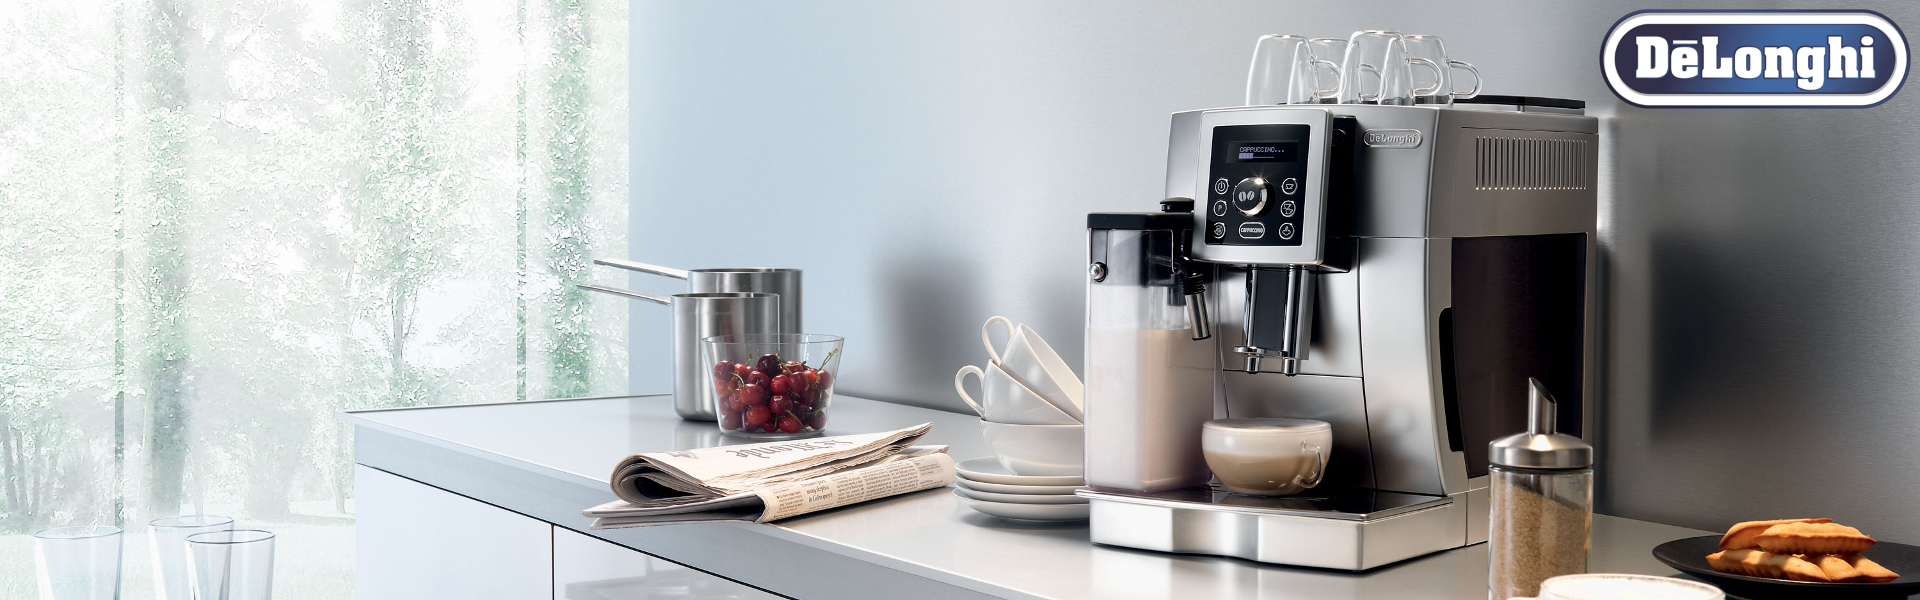 DeLonghi Magnifica Espresso Machine Sale